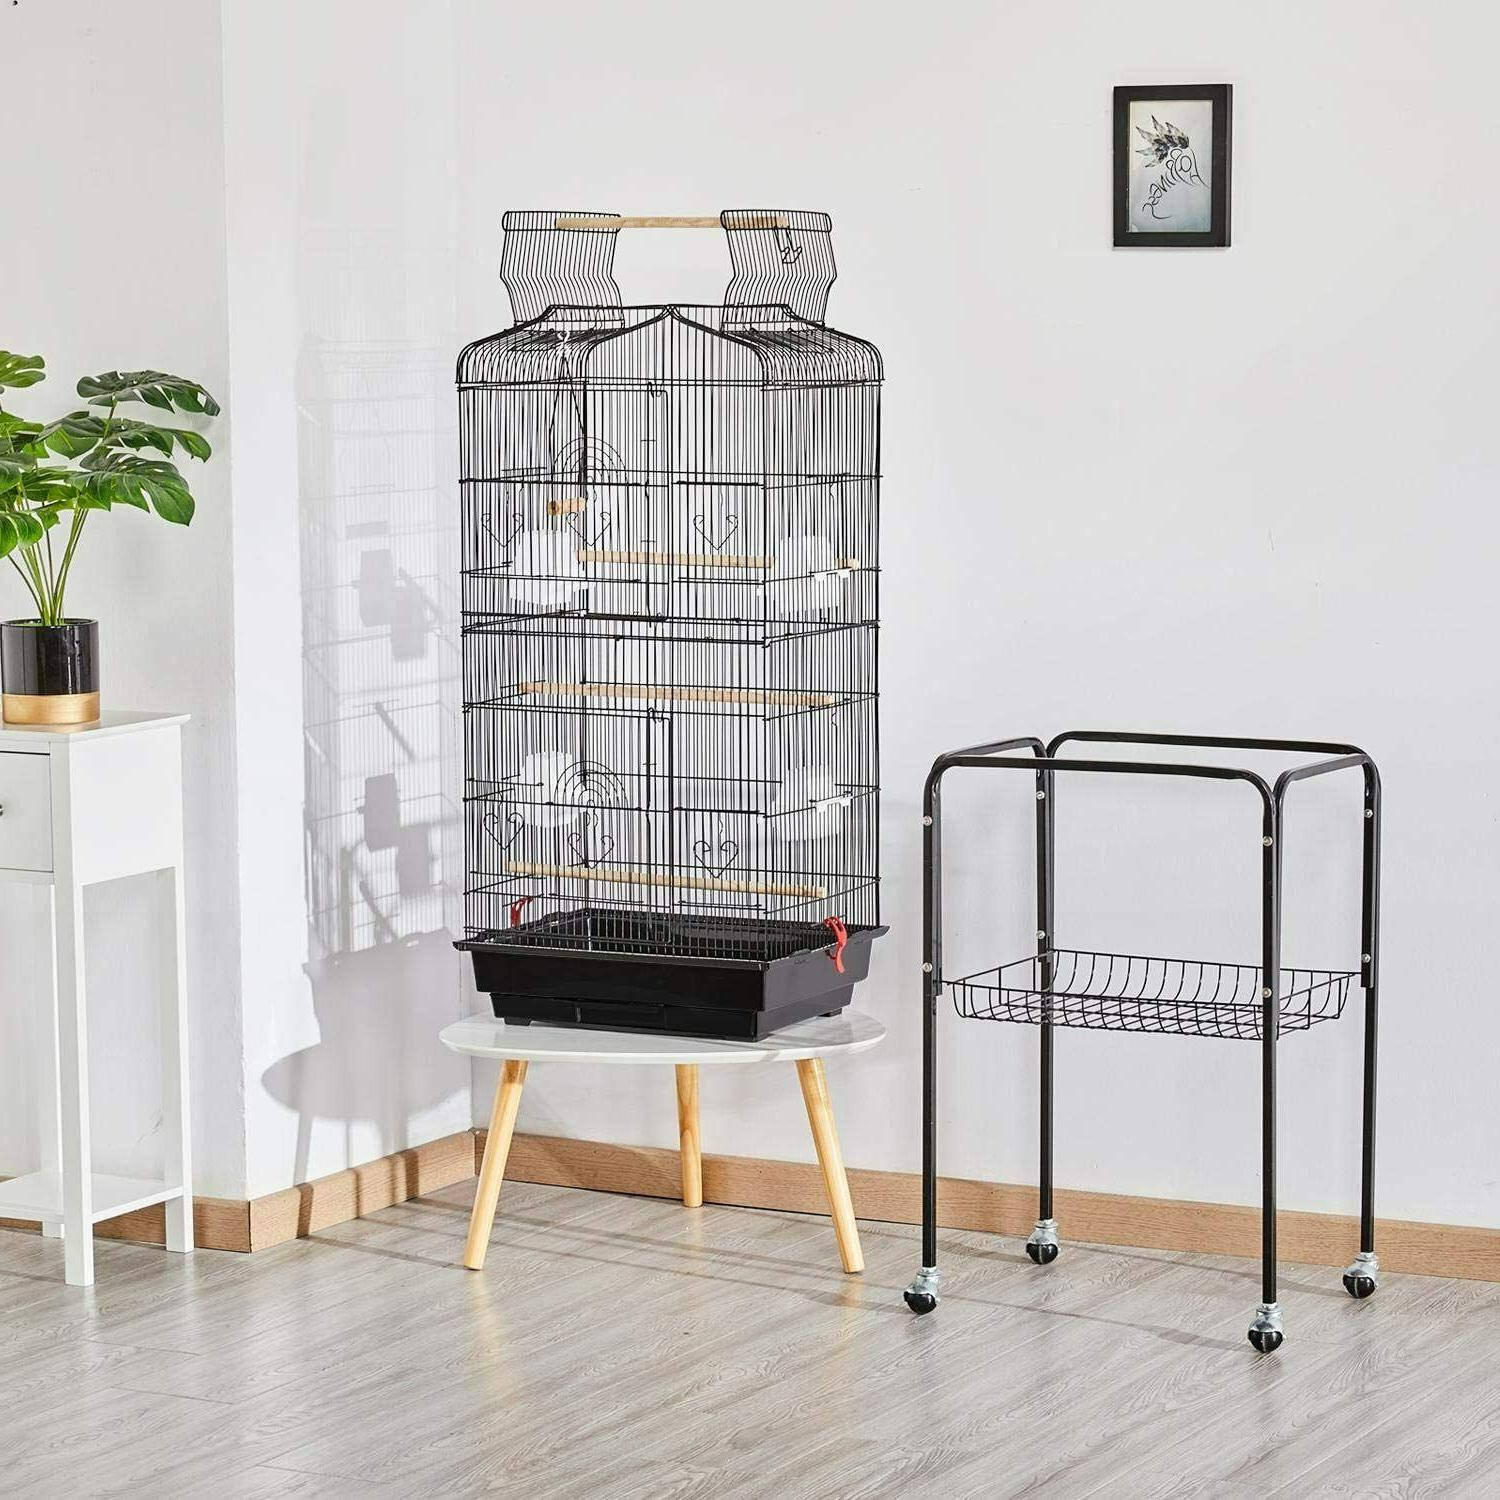 Bird Parrot Cage Rolling Stand 64 inch High for Lovebirds Co